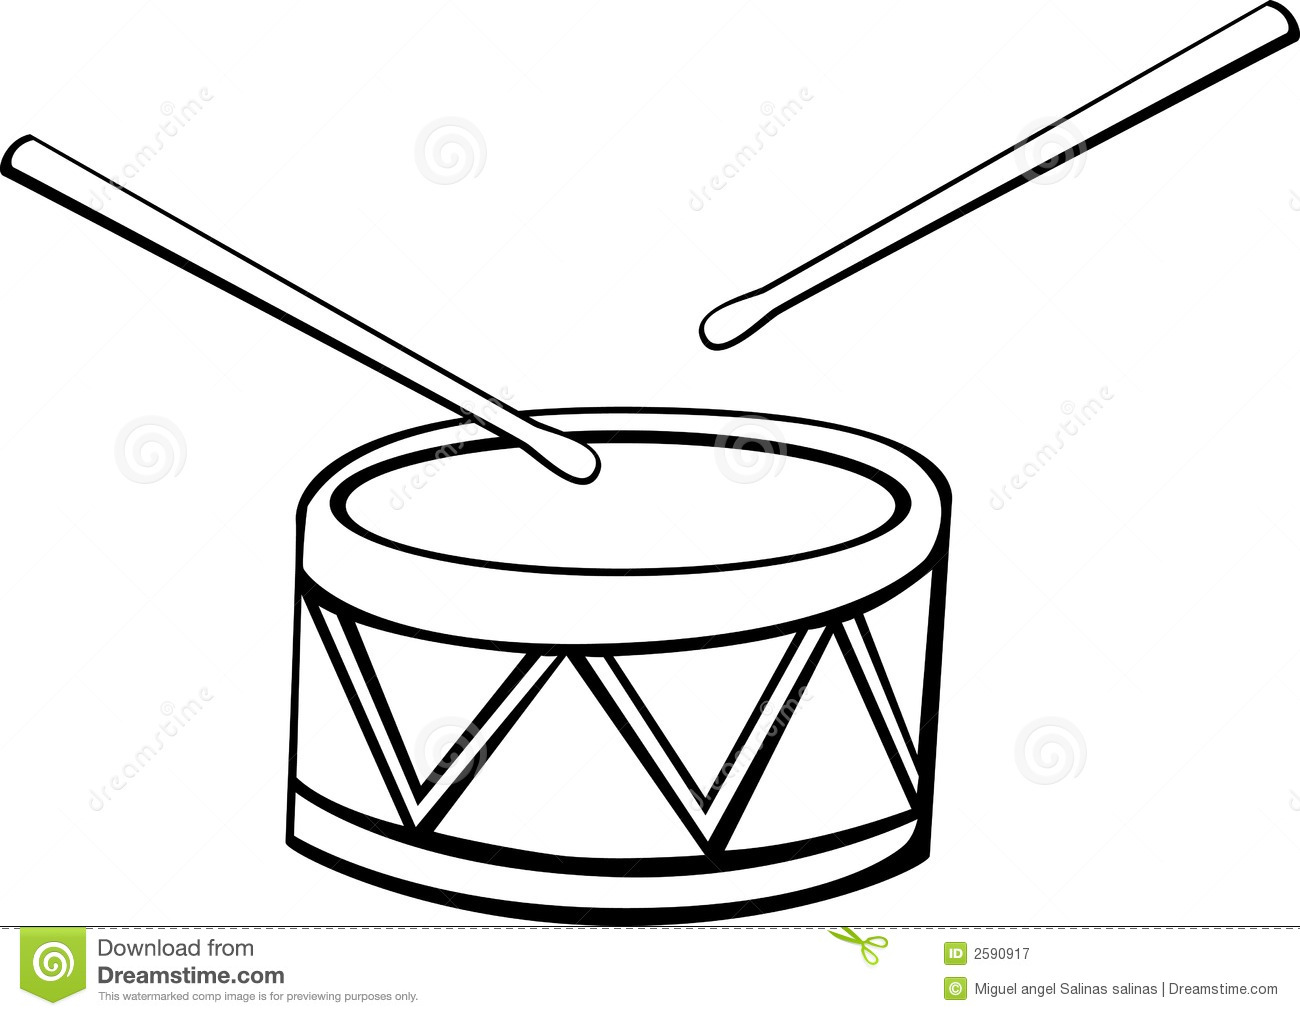 Drums clipart black and white 1 » Clipart Station.